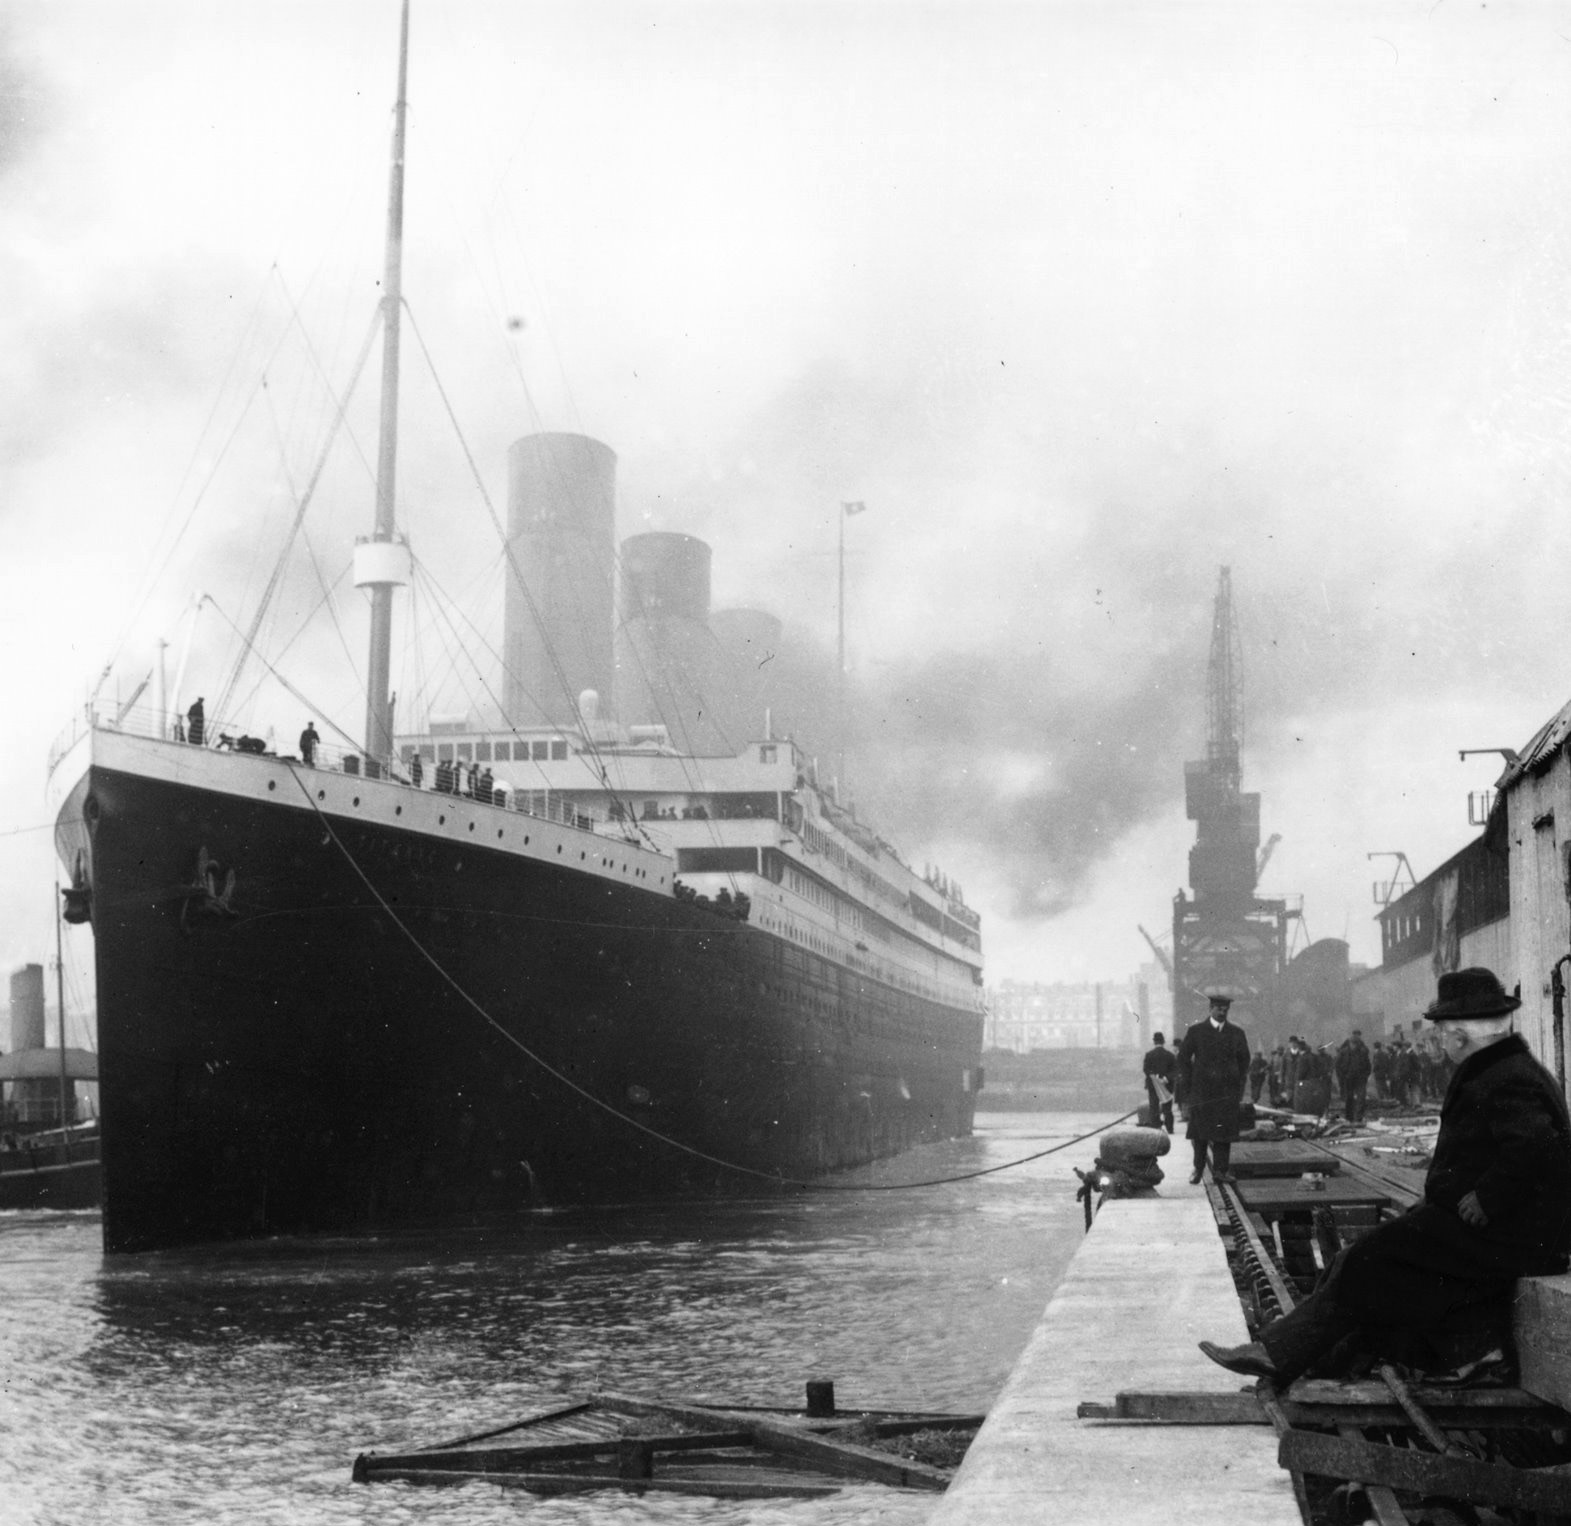 Religious African Americans saw the sinking of the Titanic as an example of ...